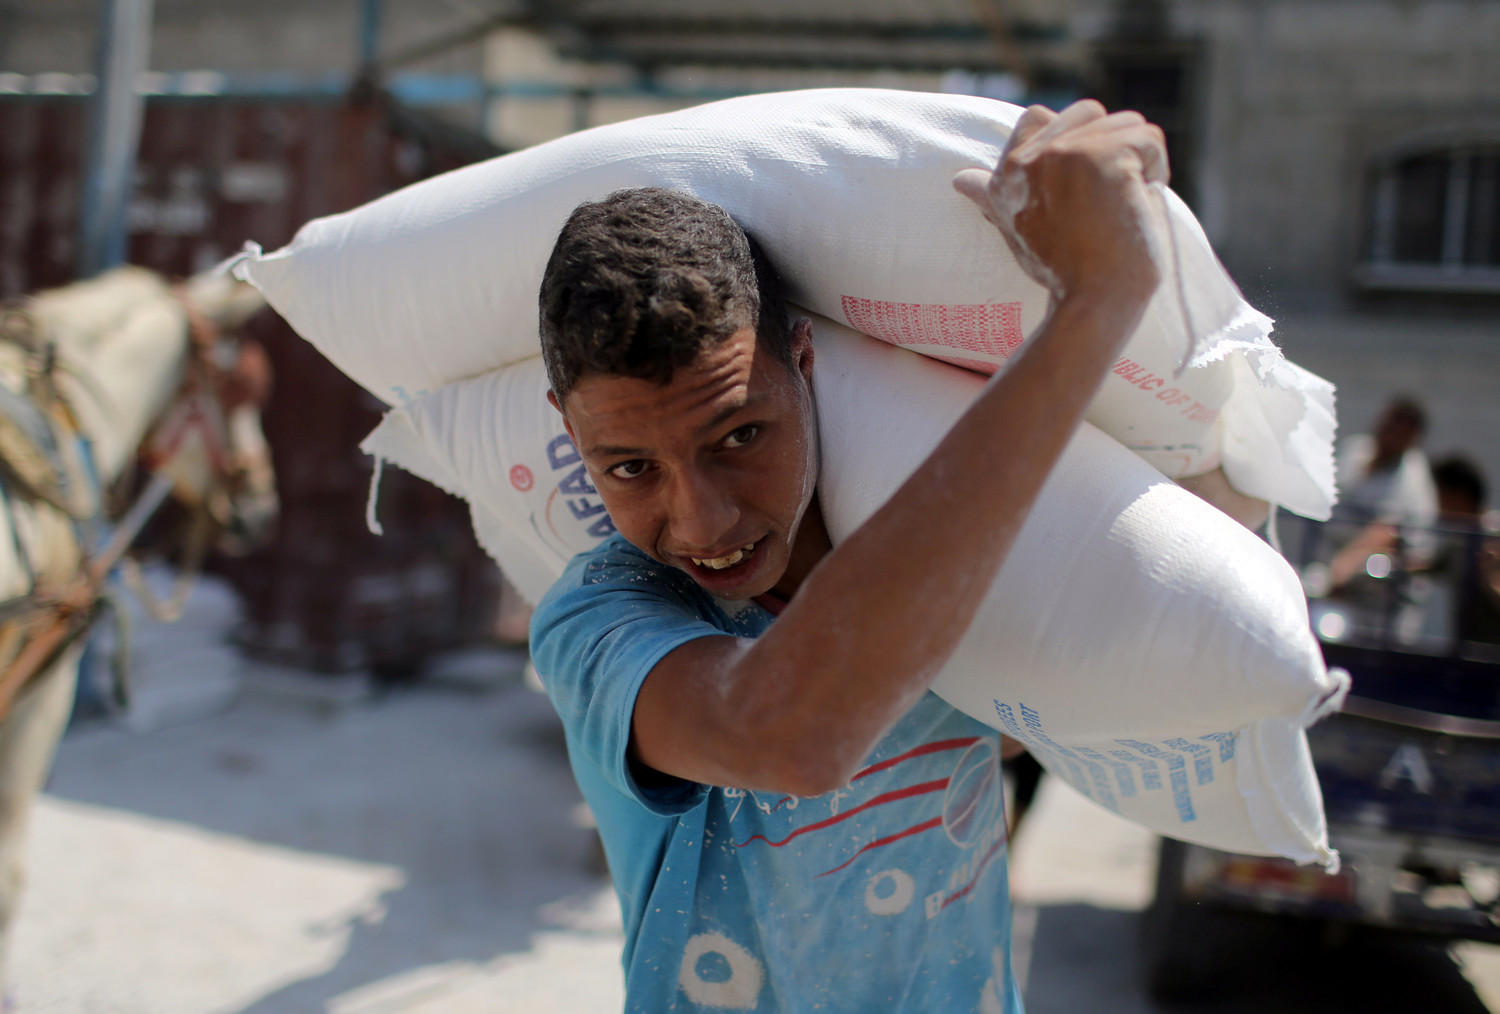 A Palestinian youth carries bags of flour Sept. 3 at an aid distribution center in Khan Younis, Gaza Strip. The U.S. budgetary cuts to humanitarian aid institutions providing assistance to Palestinians in Gaza and the West Bank could lead to long-term disastrous consequences, said aid workers in the region.